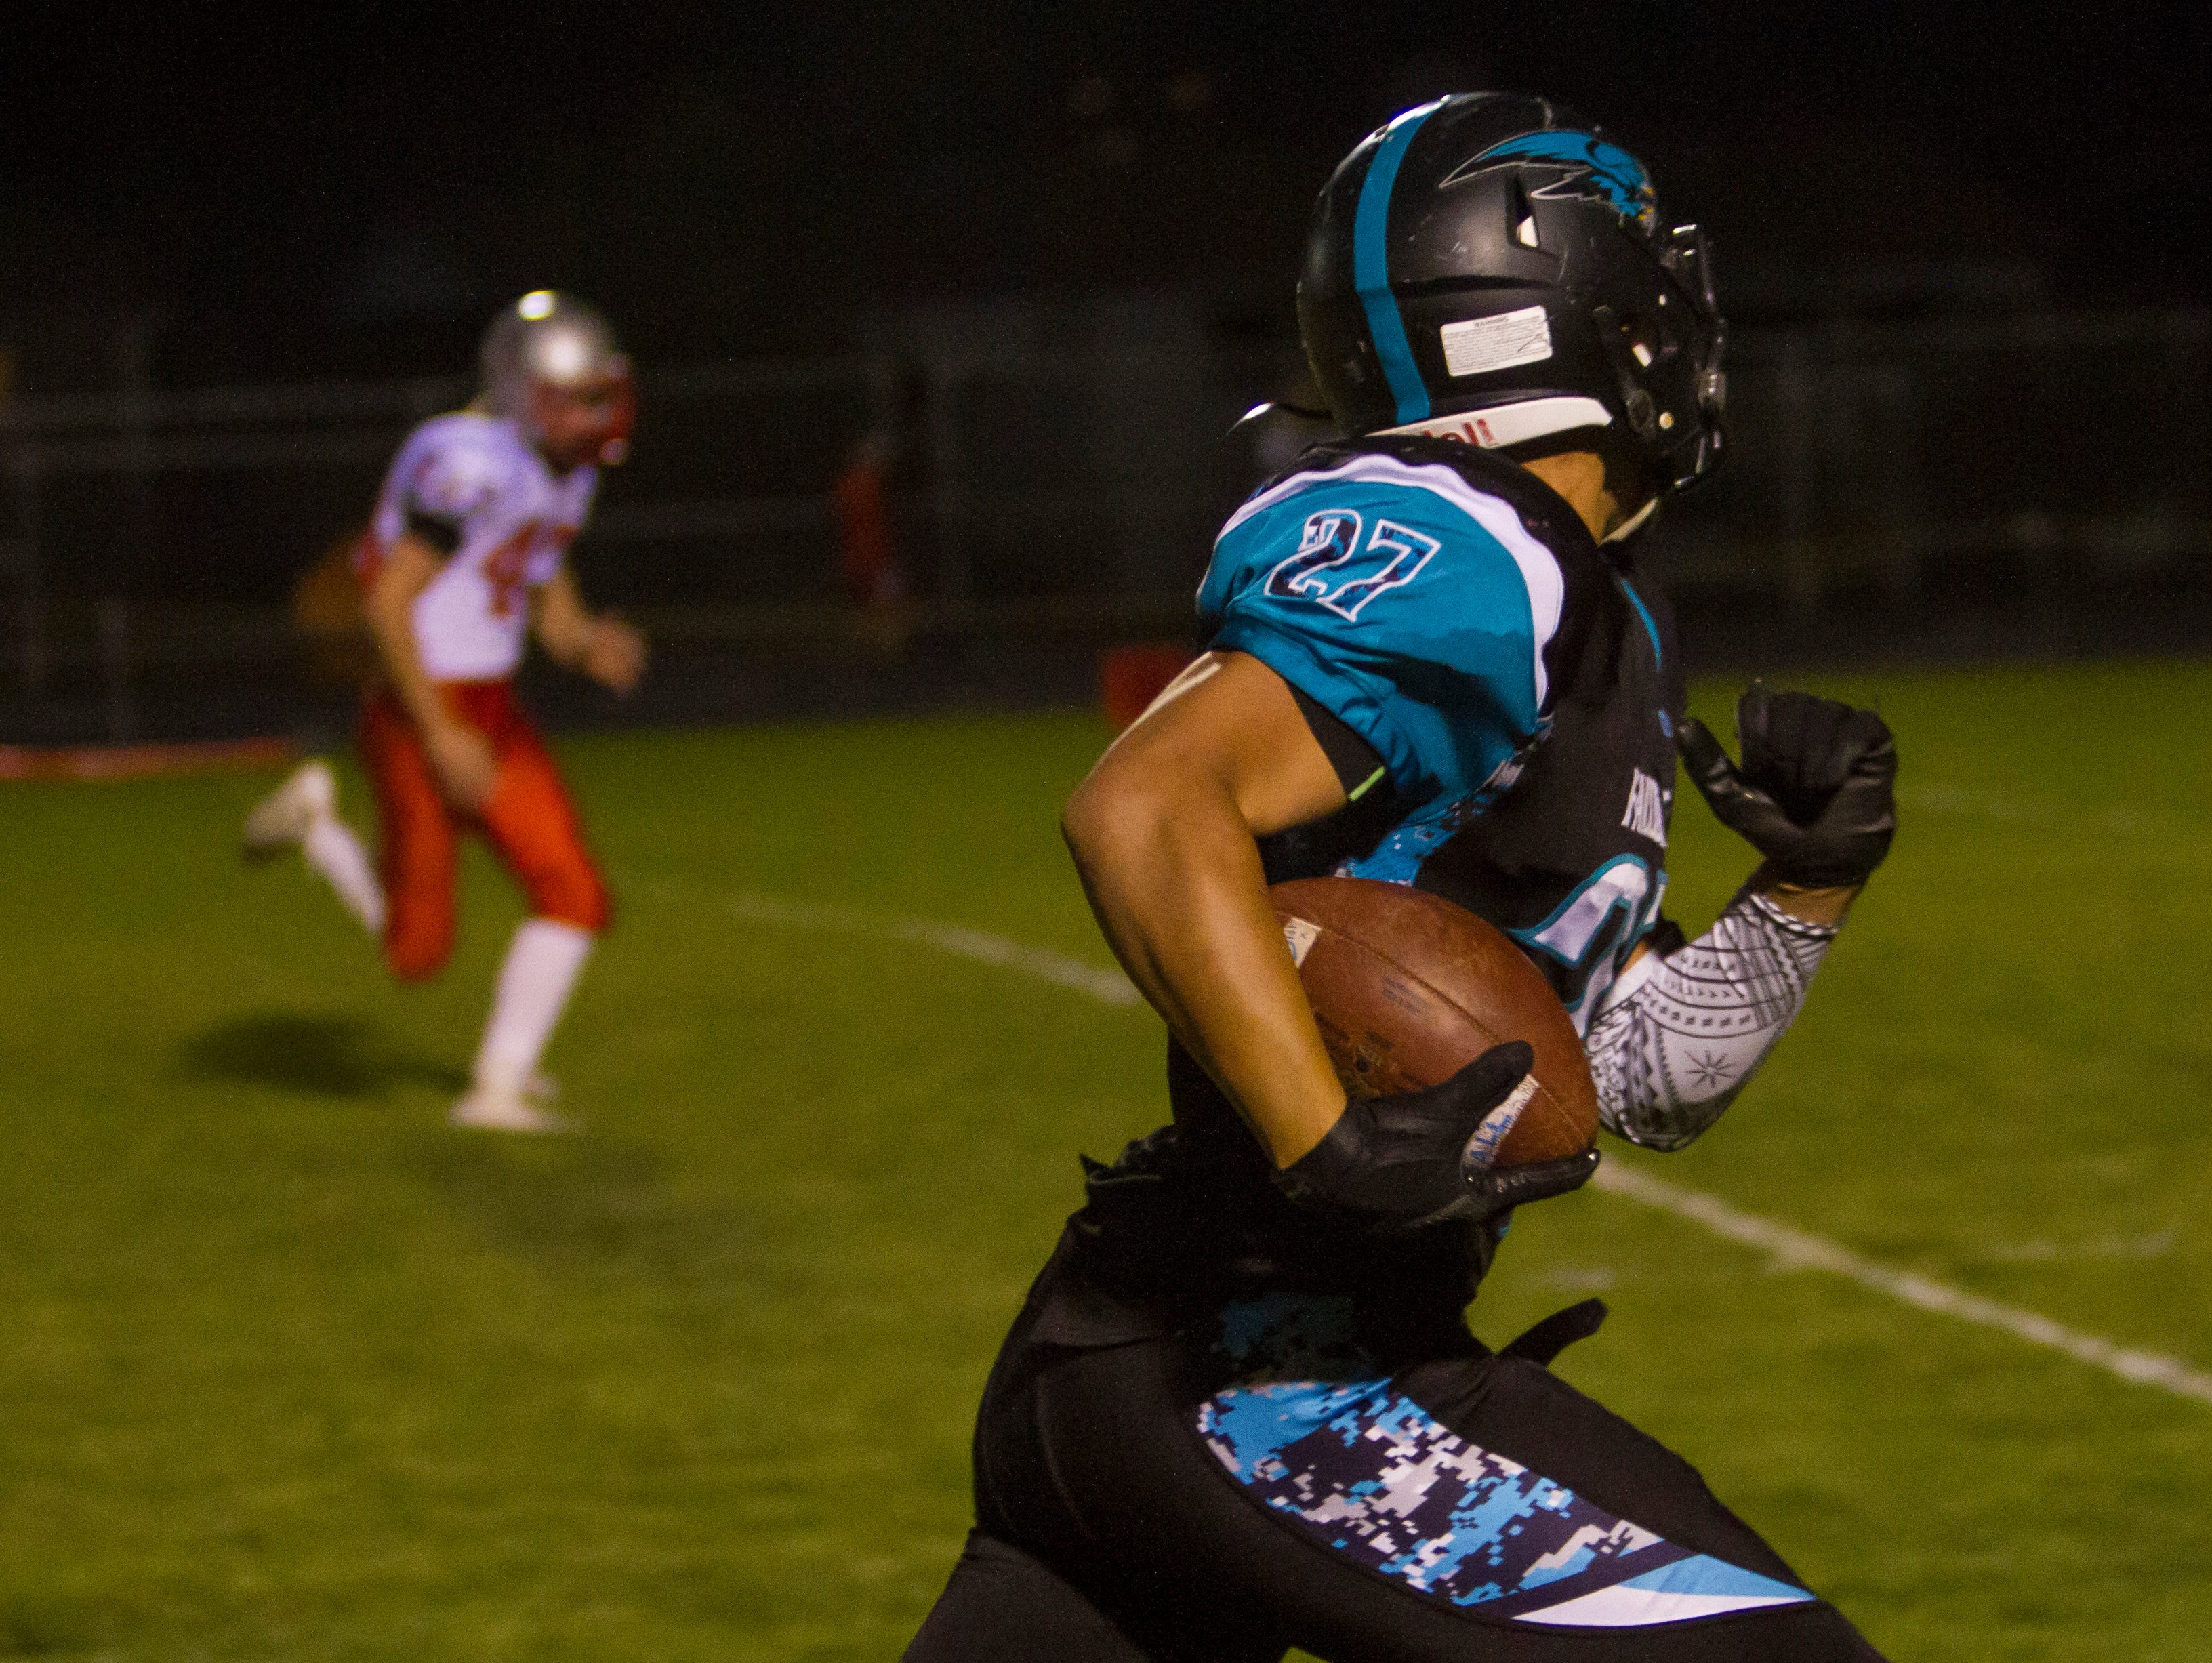 Canyon View's Jackson Vasi (#27) catches a pass for a first down against Manti, Friday, Sept. 18, 2015.